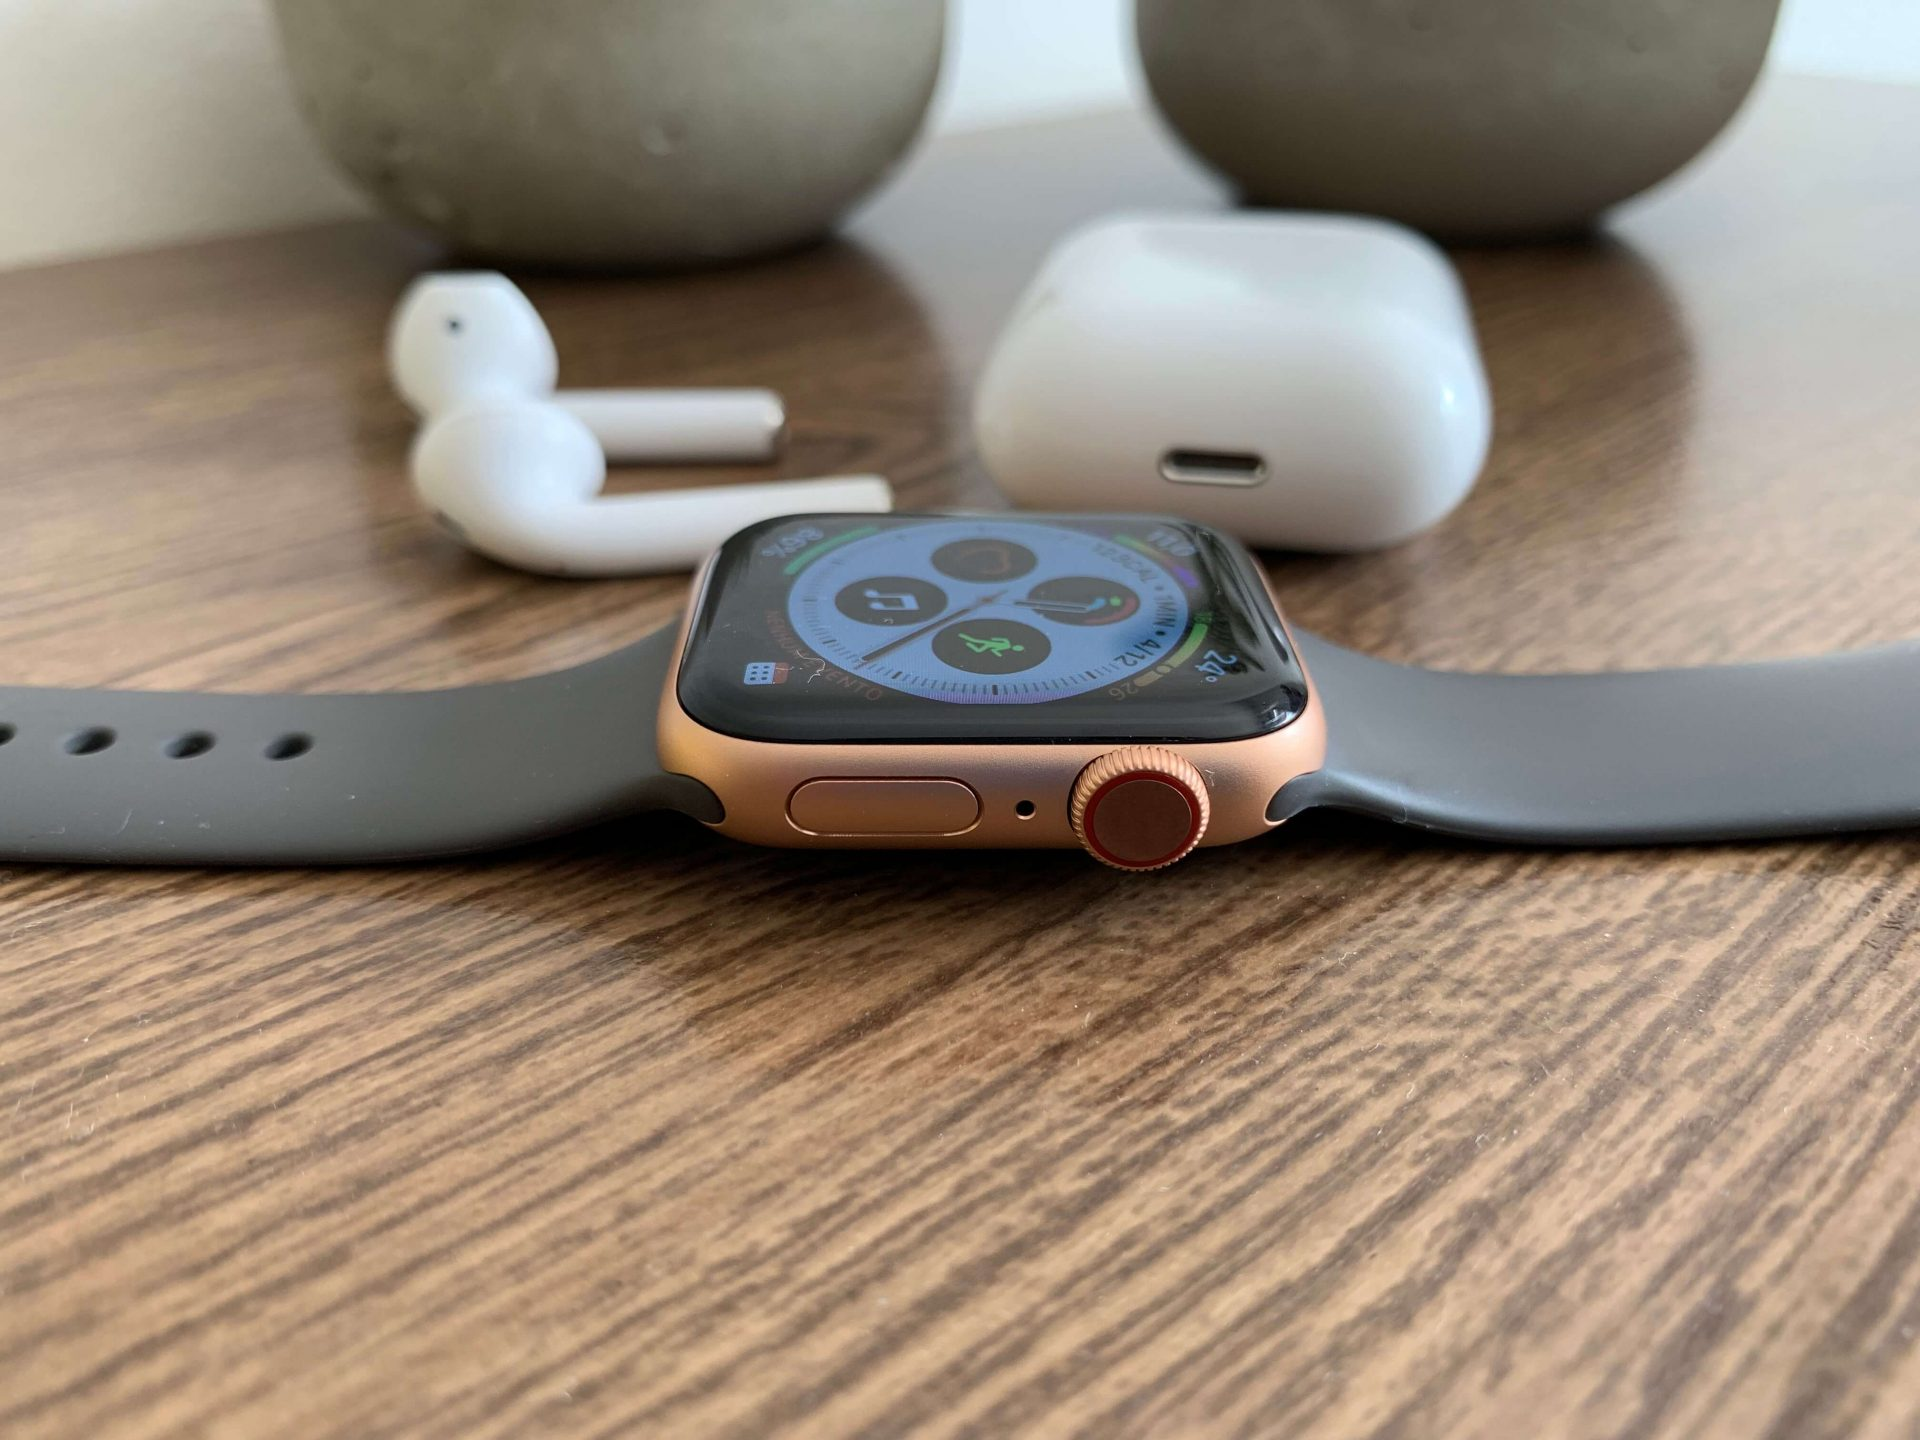 Review: Apple Watch Series 4 - Digital Crown